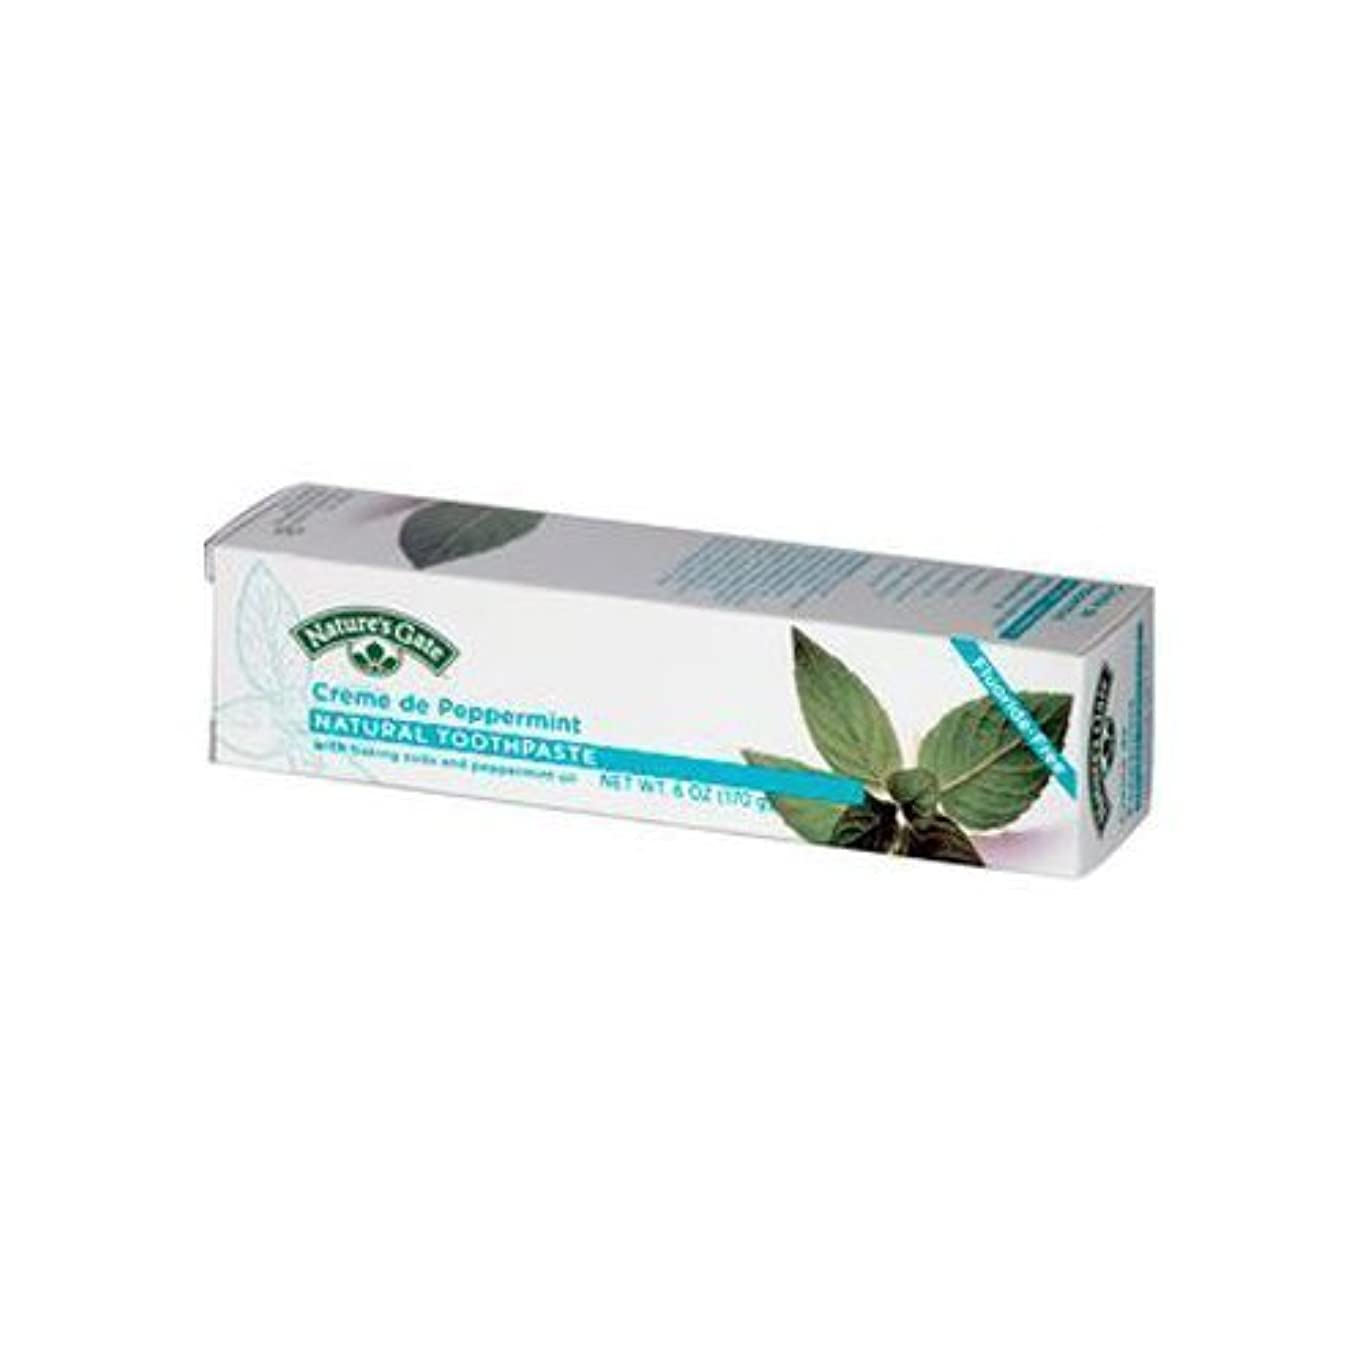 苦行政策新年Natures Gate Natural Toothpaste Cr?me De Peppermint - 6 oz - Case of 6 by NATURE'S GATE [並行輸入品]